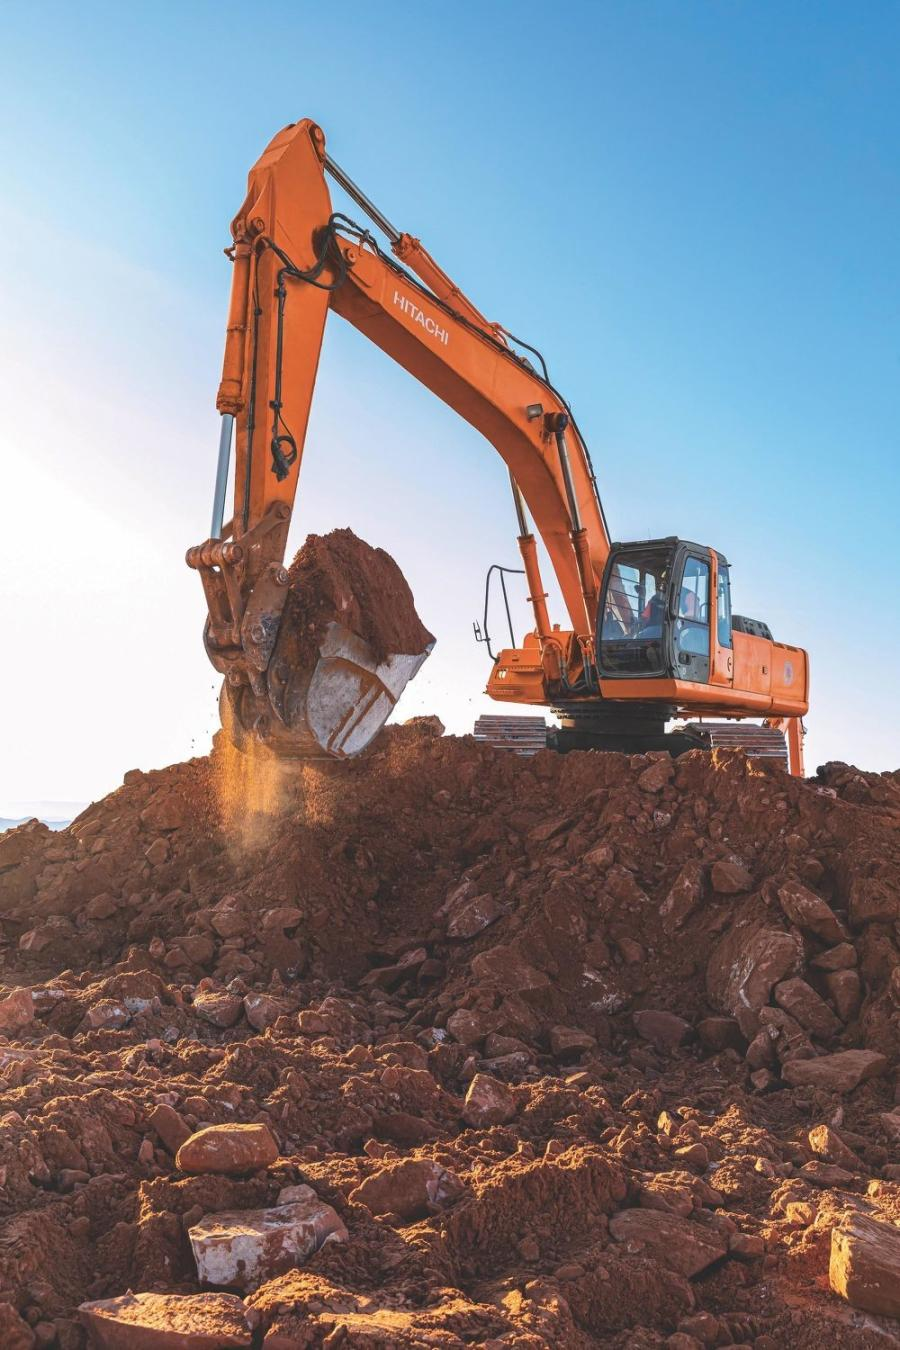 Hitachi continues to provide a range of machines customers trust for their operations.